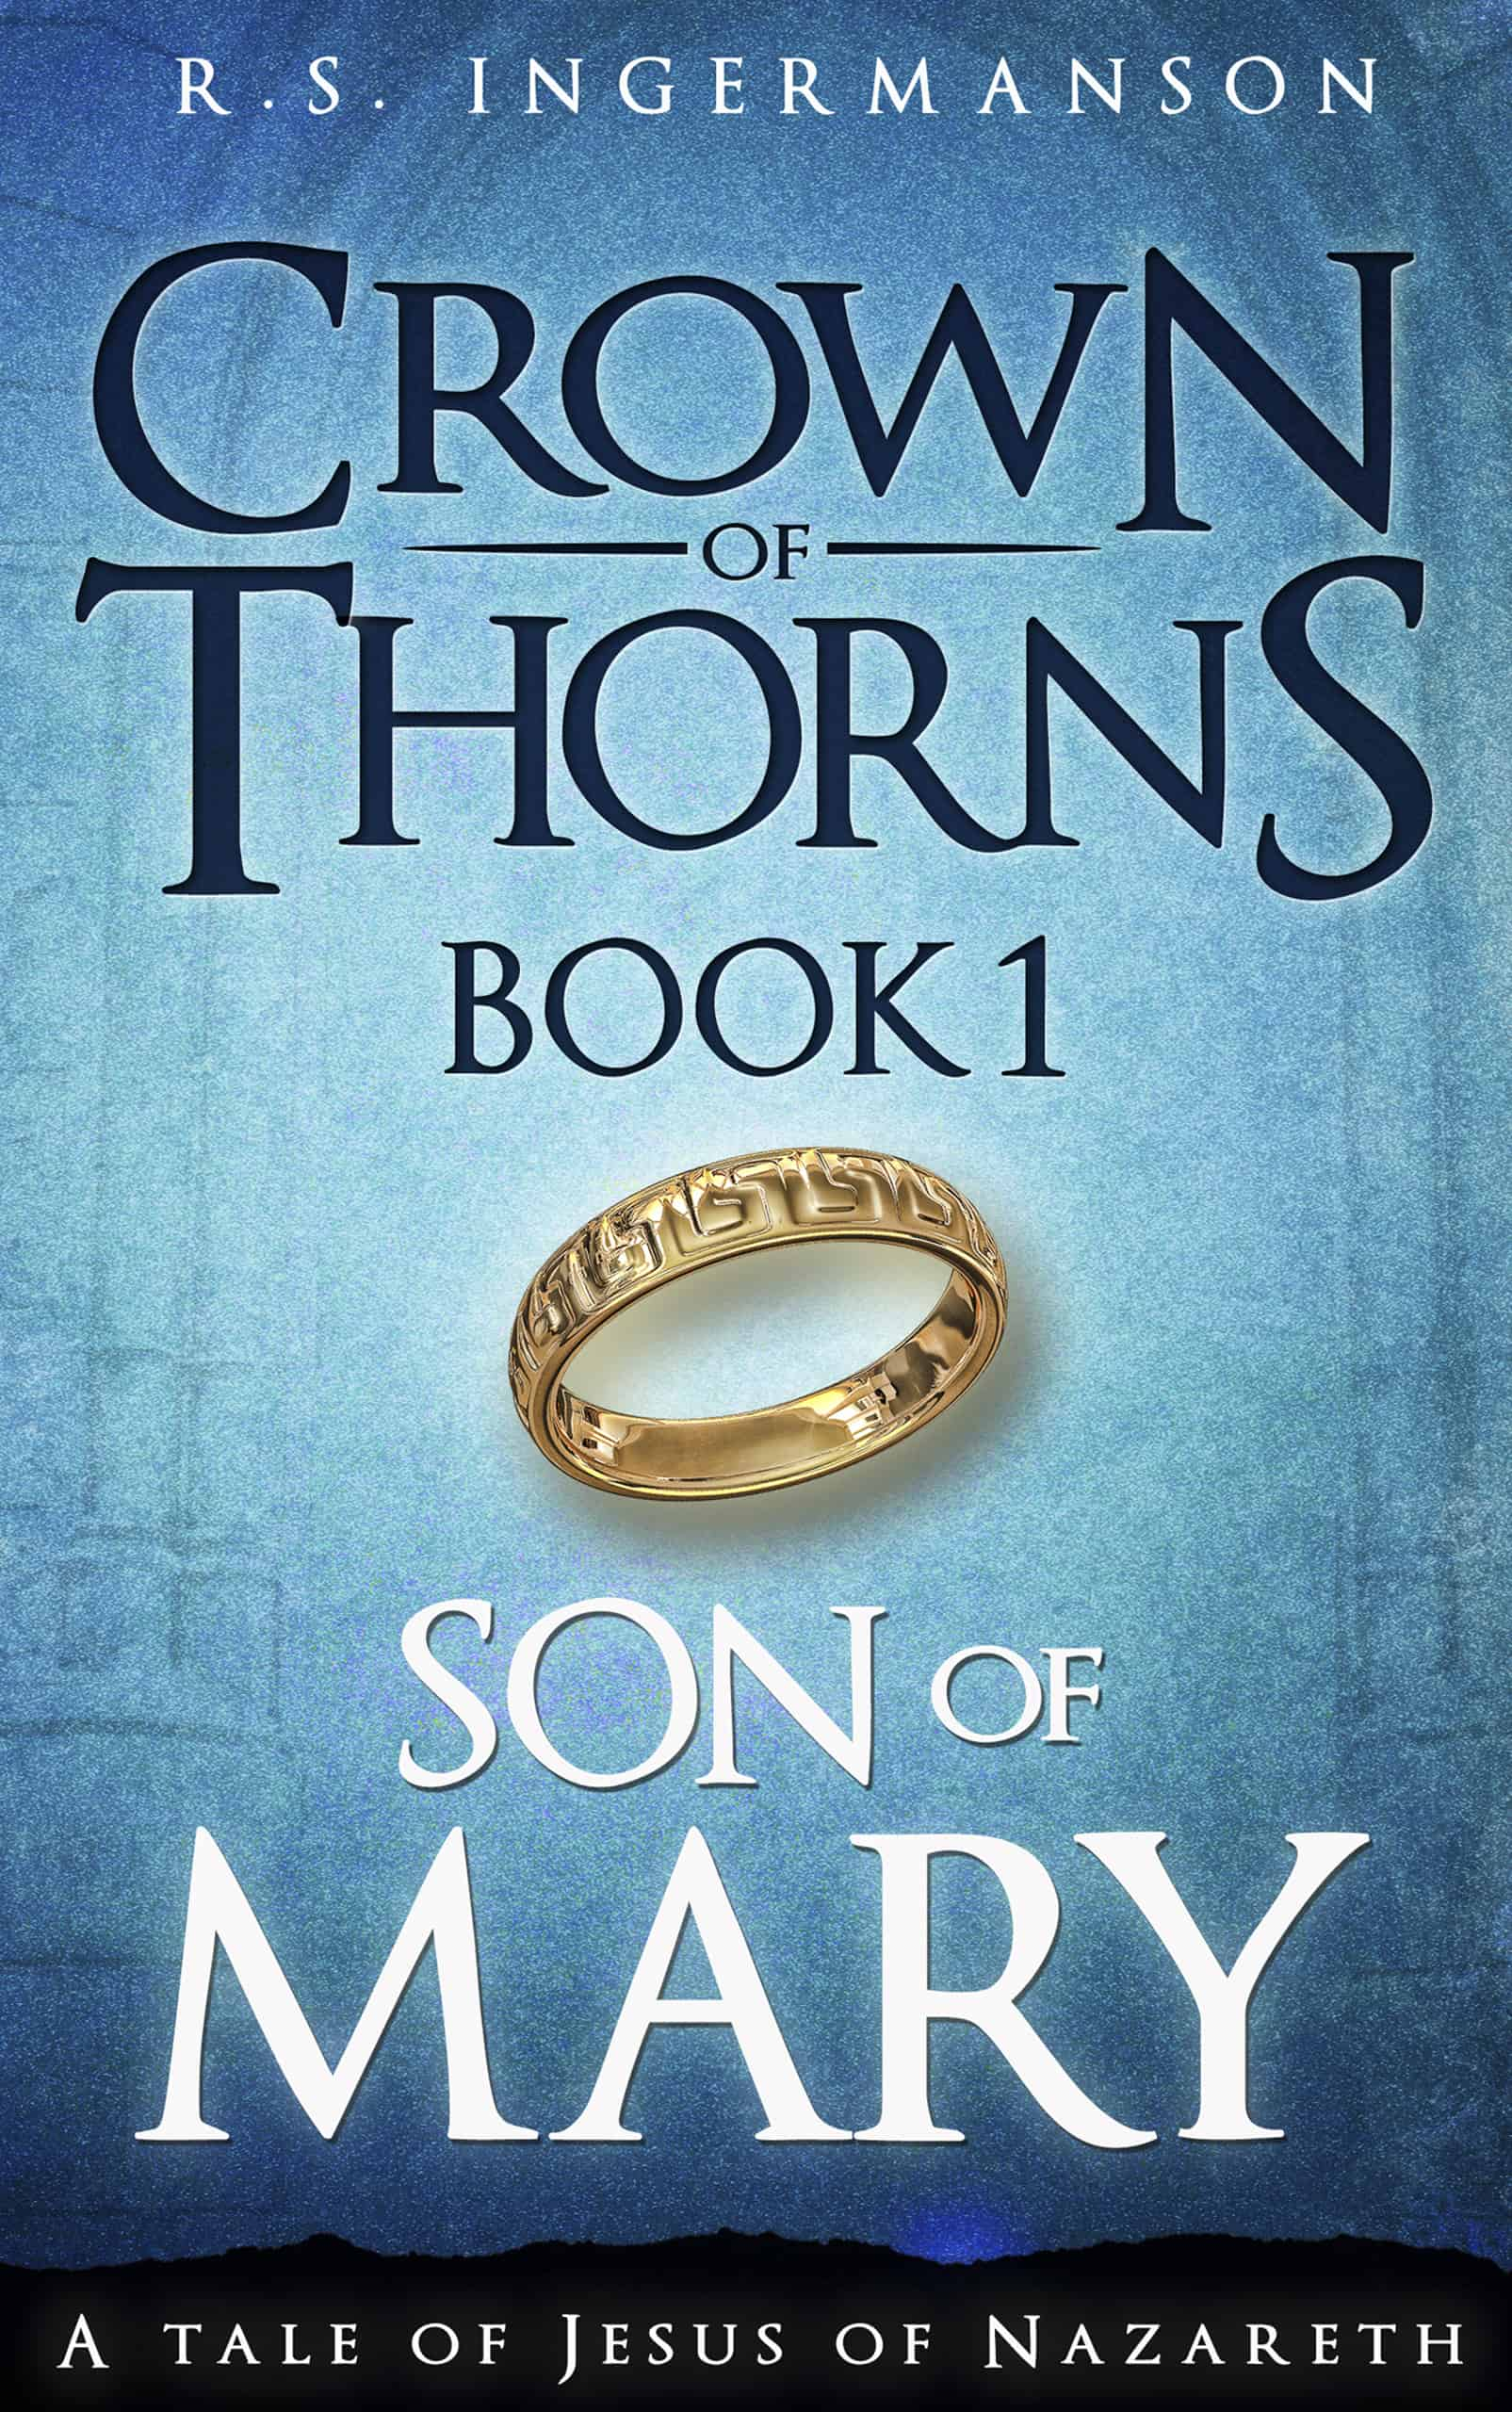 Cover art for Son of Mary, Book 1 in the Crown of Thorns series.